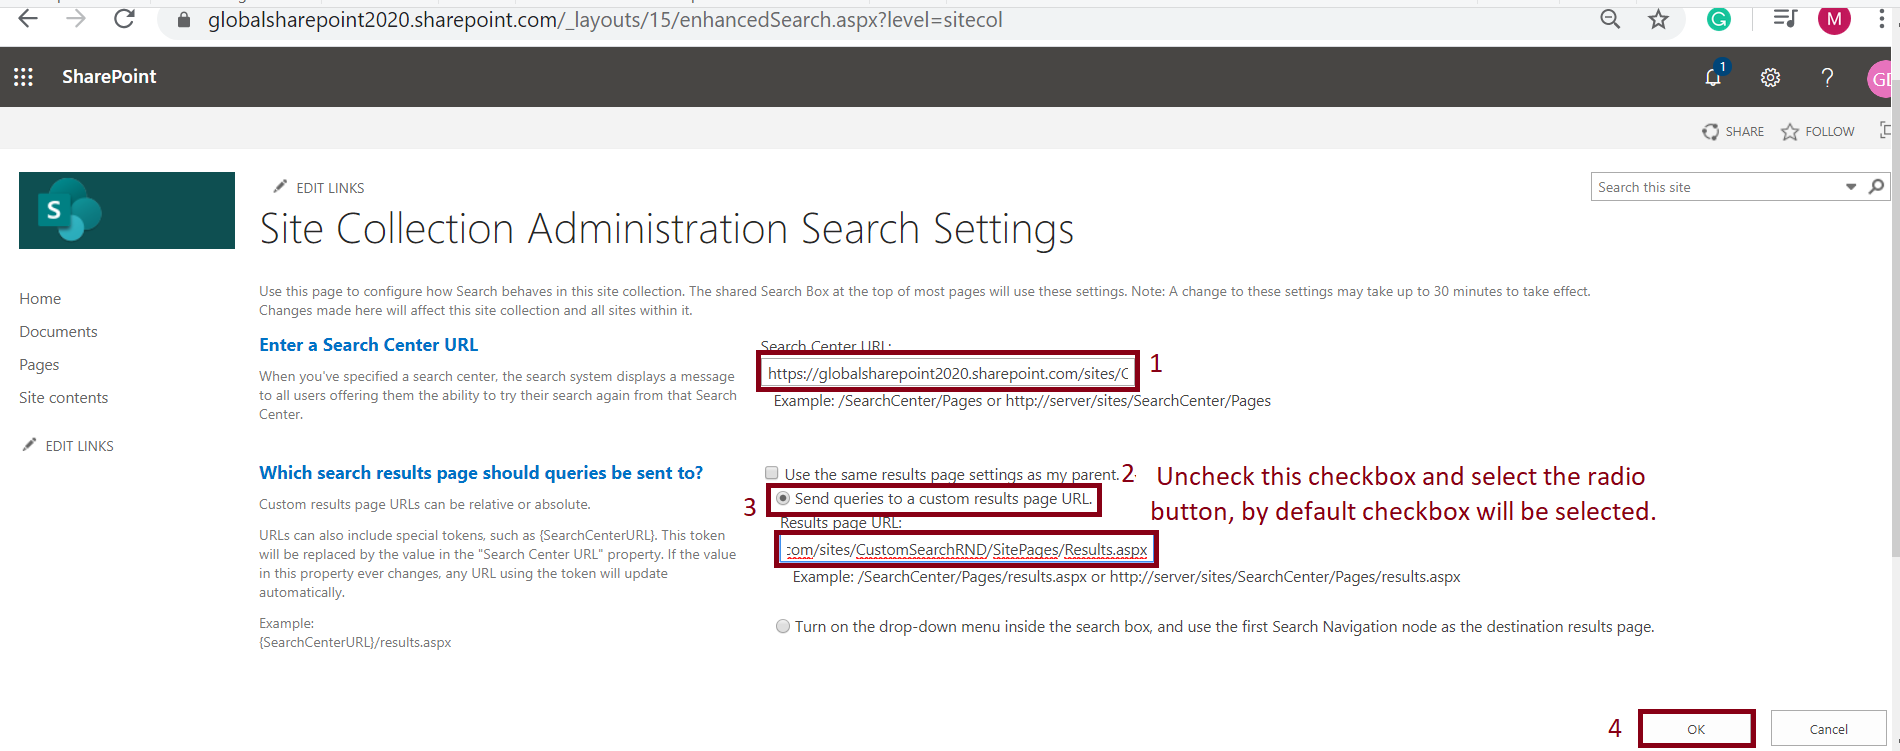 Search settings page configuration in SharePoint Online